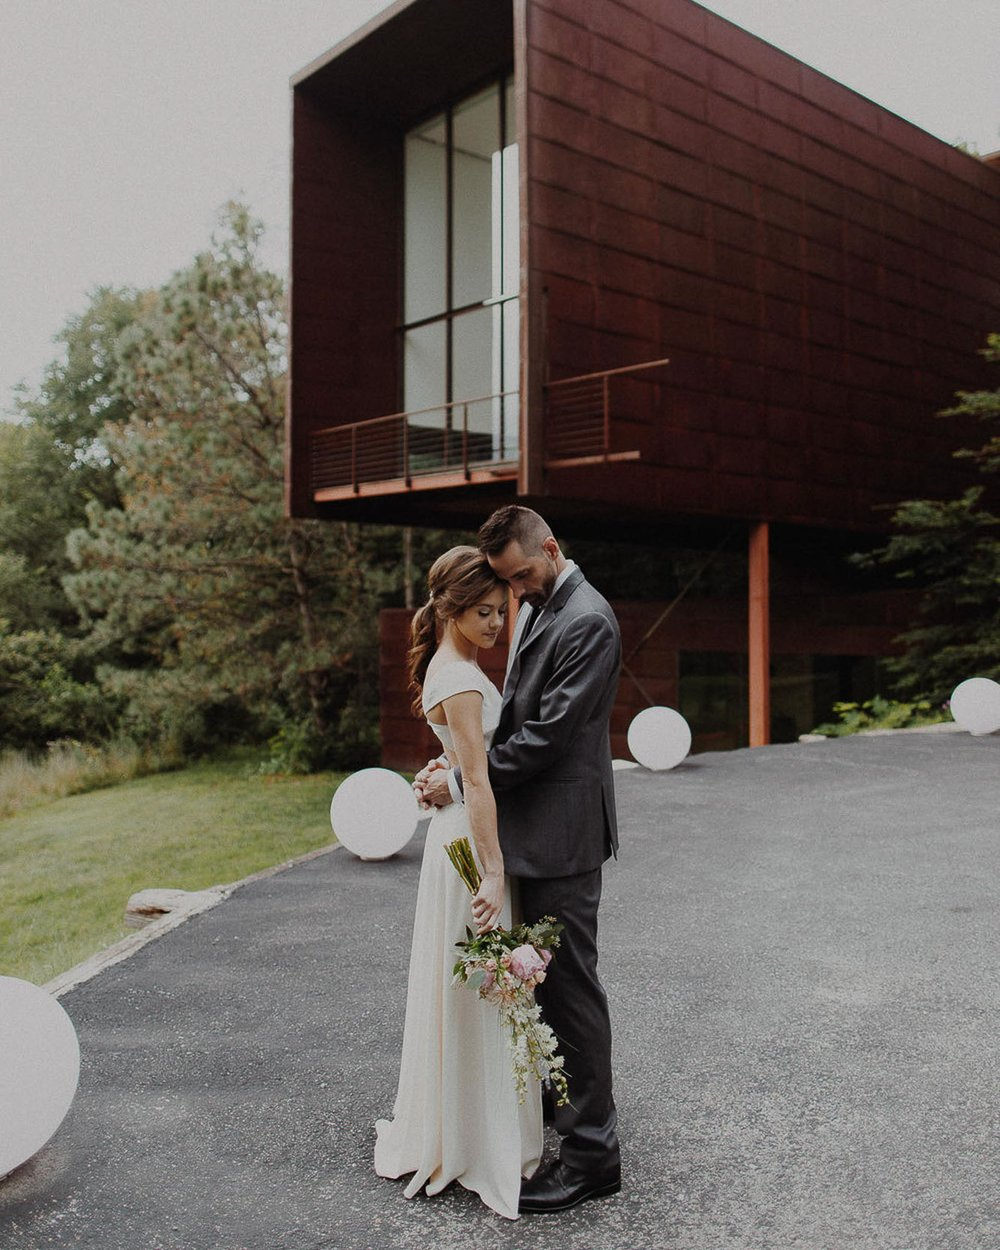 Daniel + Jackie  Modern Wedding at The Laboratory House in Omaha, Nebraska Wedding VIEW